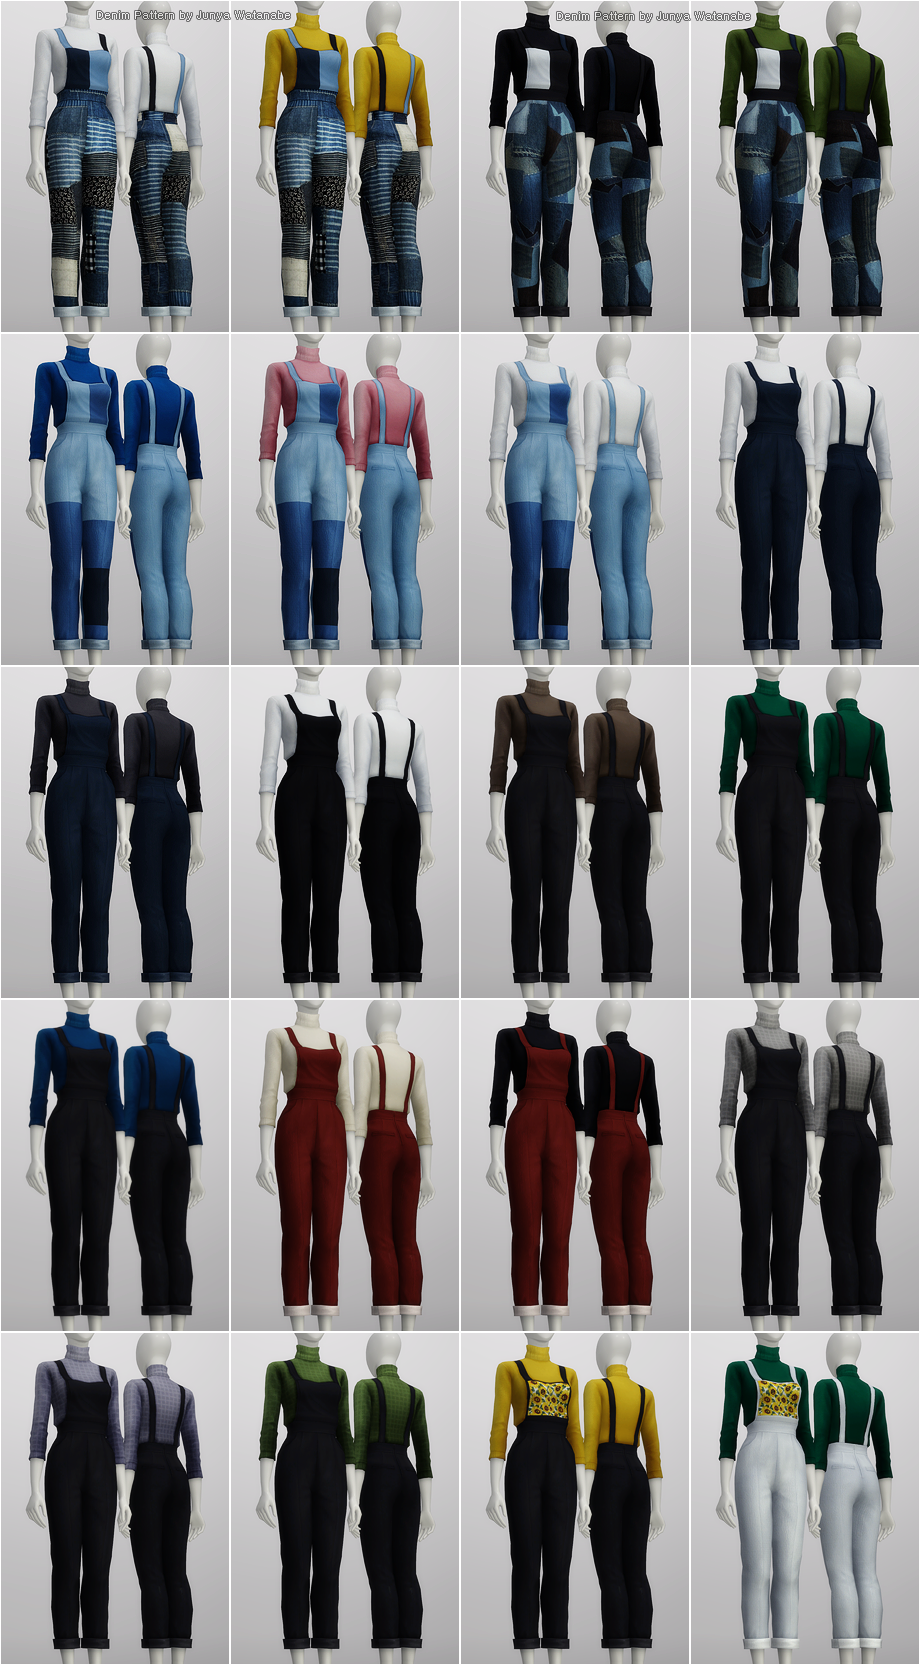 Sims 4 Overalls Jumpsuit For F 20 Color By Rusty Nail Sims 4 Sims Sims 4 Cc